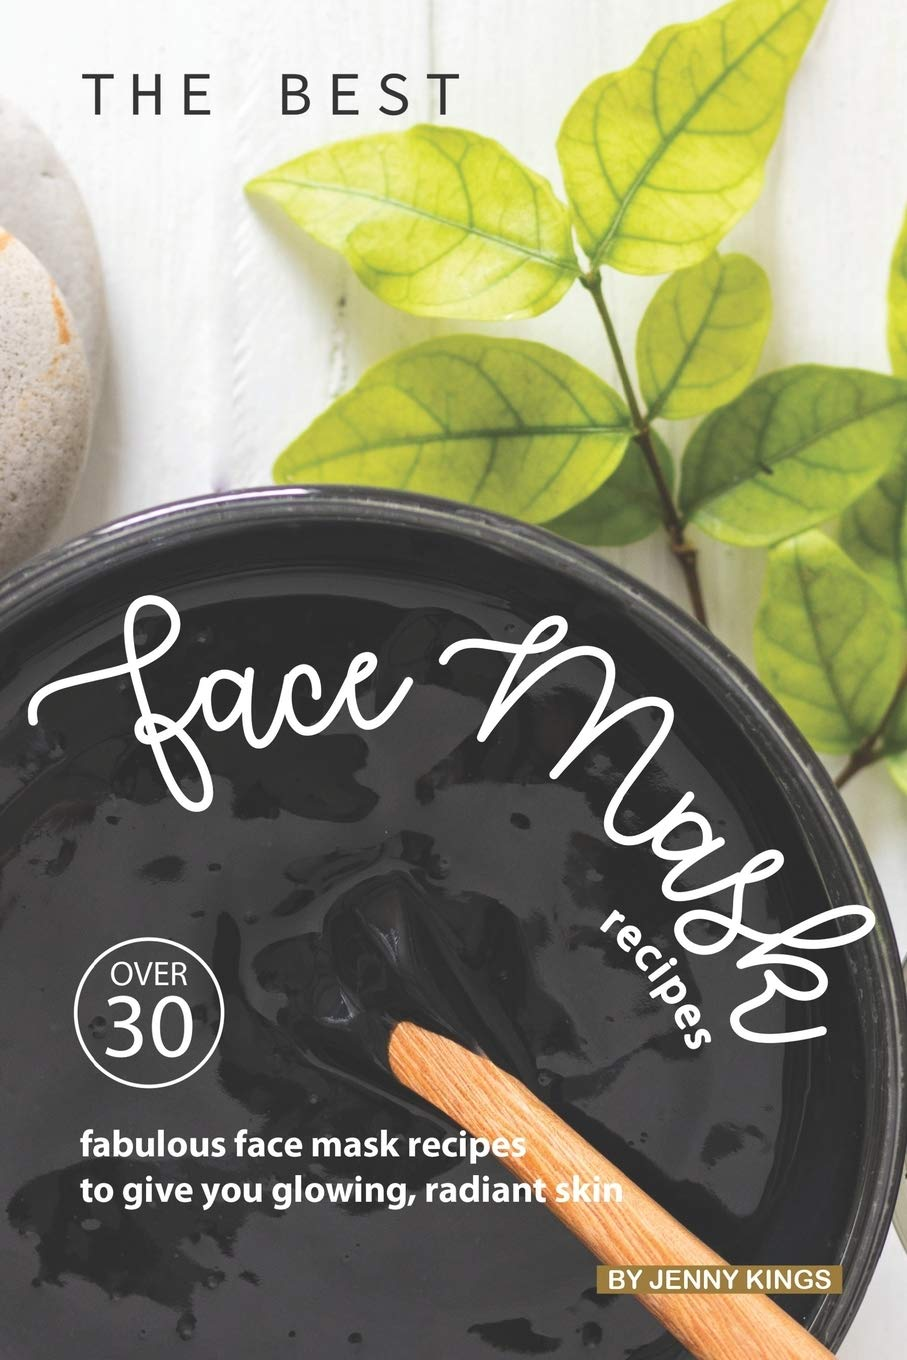 The Best Face Mask Recipes Over 30 Fabulous Face Mask Recipes To Give You Glowing Radiant Skin Kings Jenny 9781693935664 Amazon Com Books